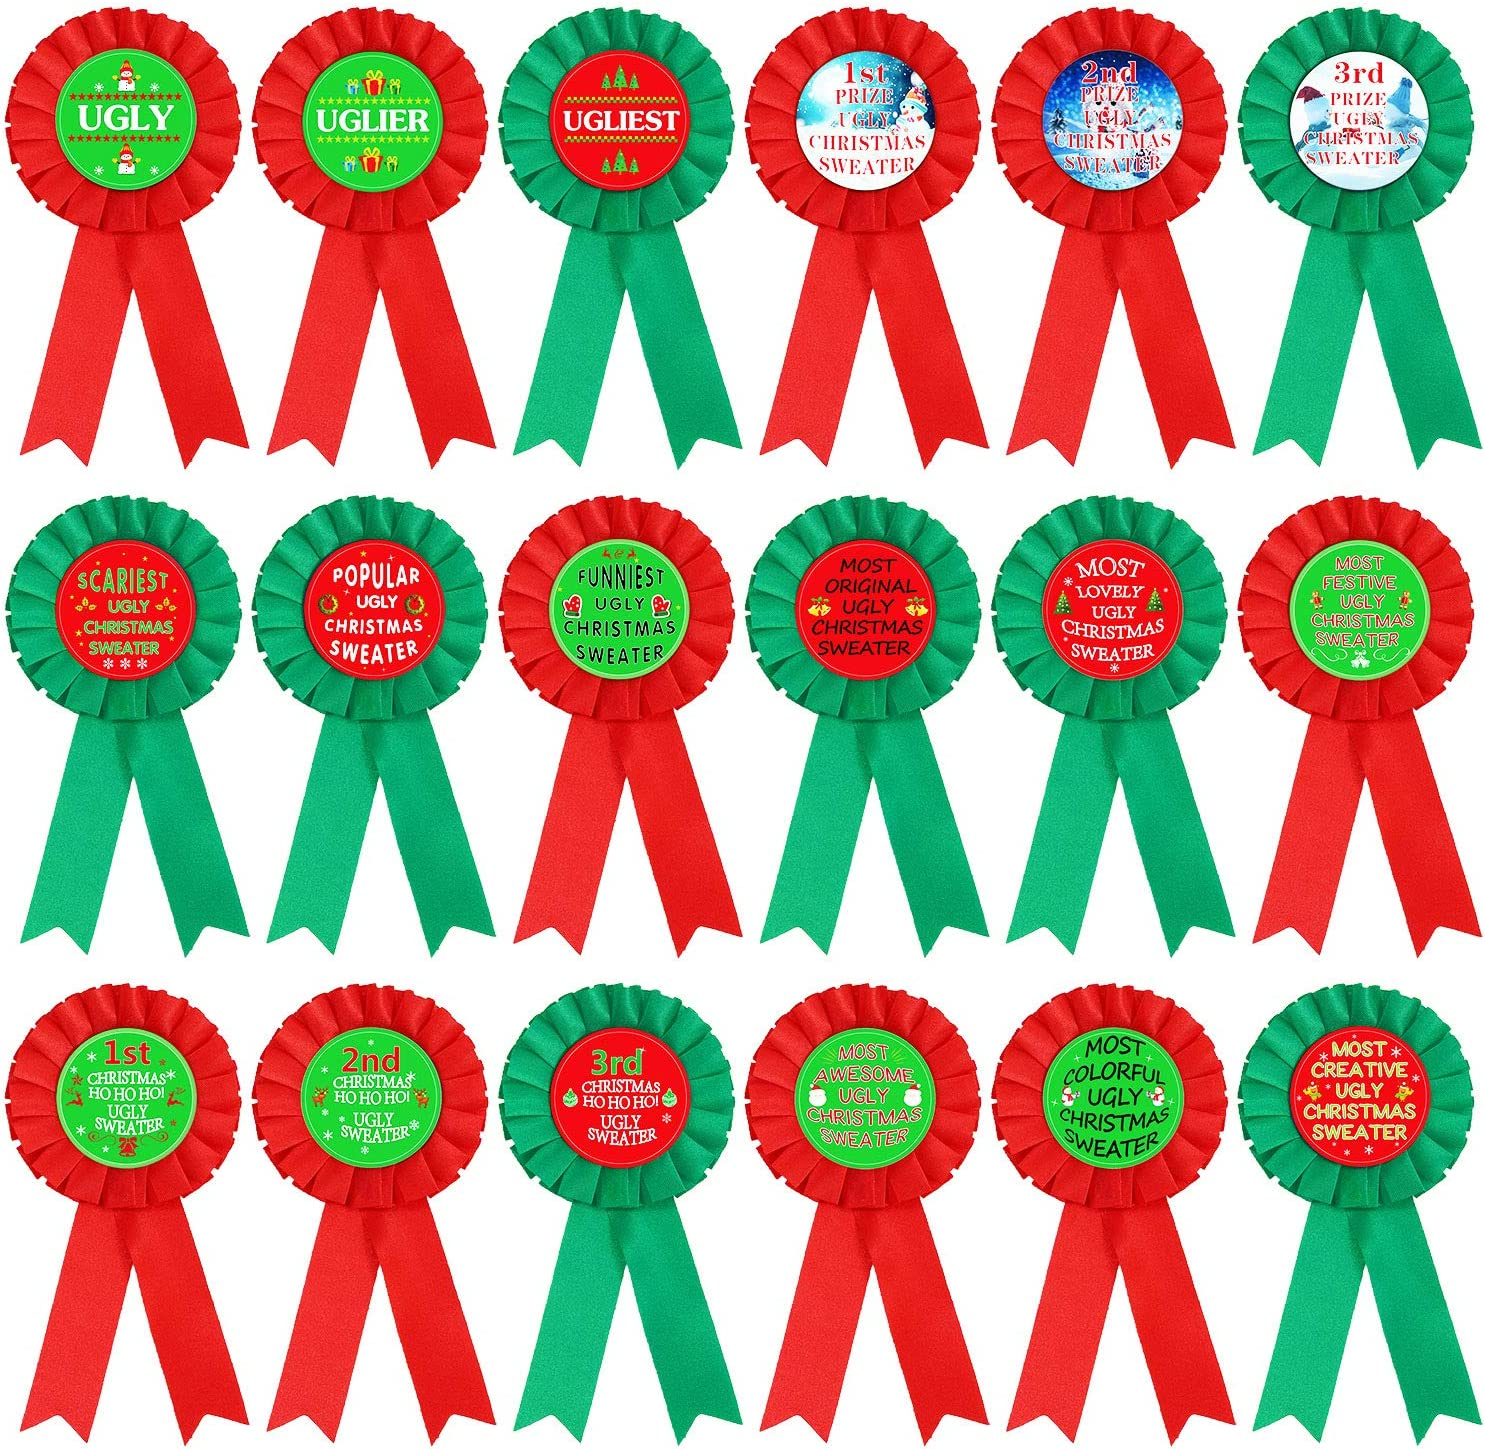 Aneco 18 Pieces Ugly Christmas Sweater Award Ribbons Xmas Party Contest Prize Pins Ornaments Decorations 18 Award Designs for Holiday Party Game,